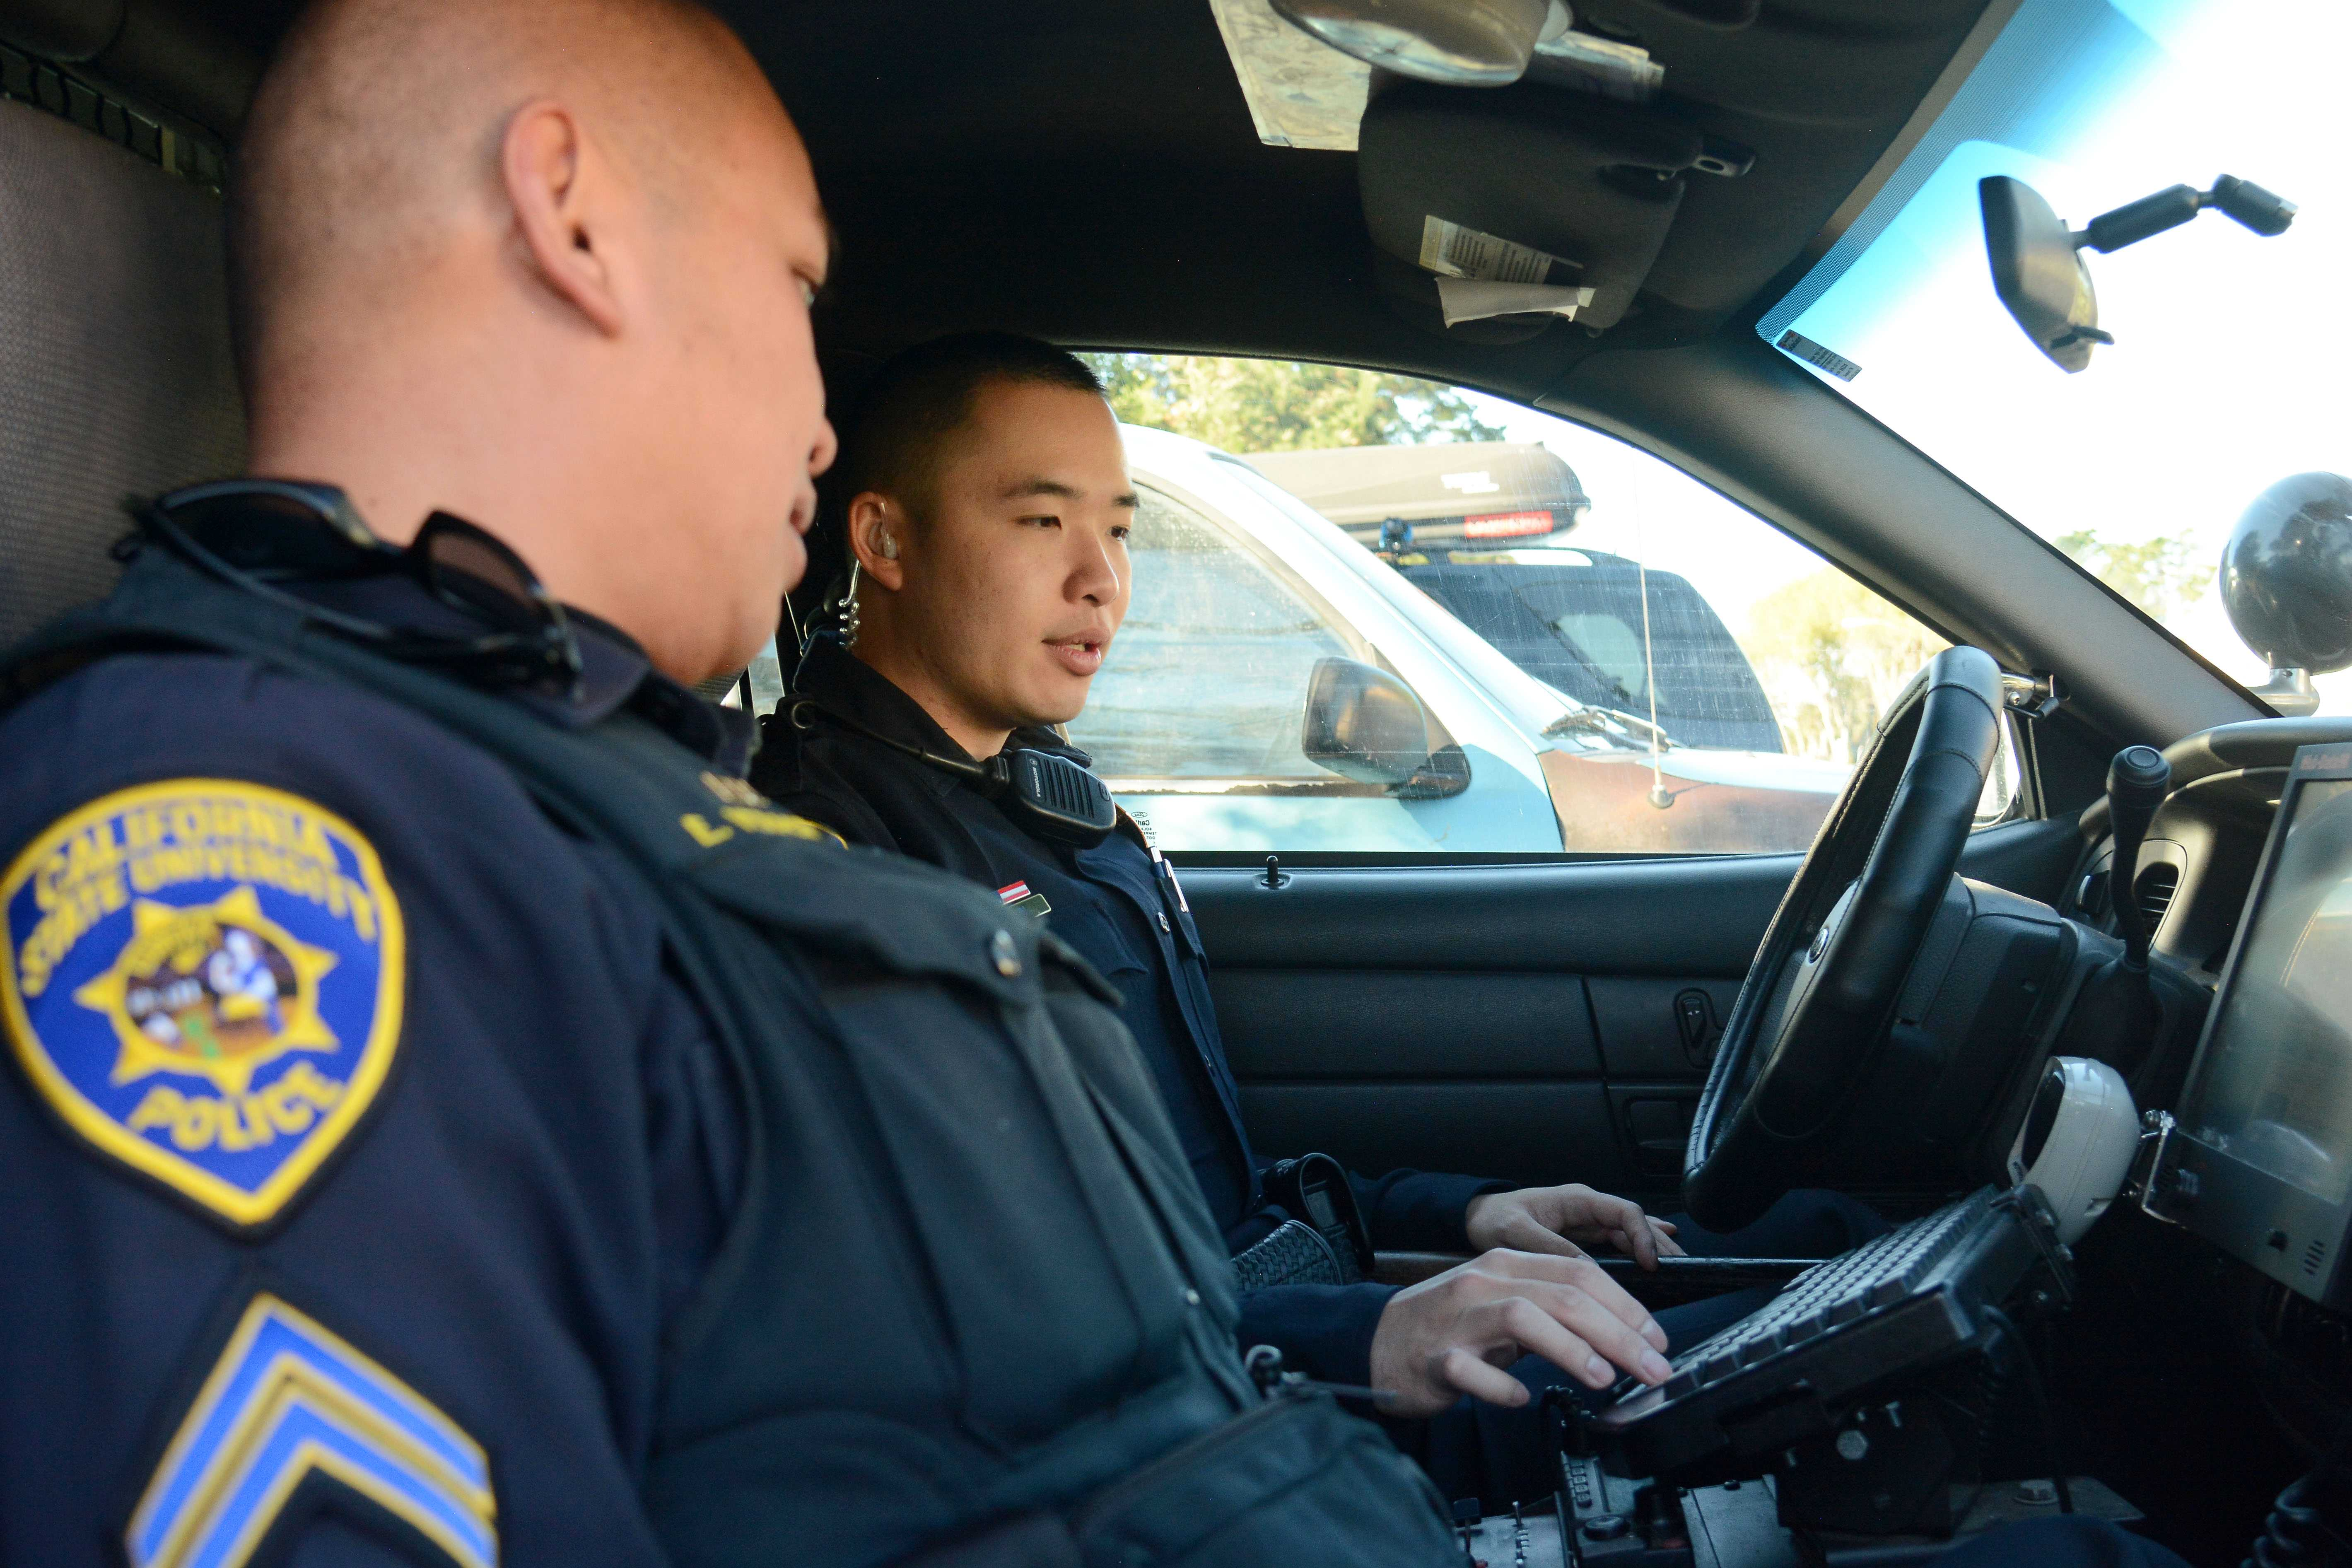 Cpl. Enrique Vera Cruz (left) chats with Officer David Lin (right) in a squad car by the University Police Department station at SF State in San Francisco, Calif., on Thursday, Dec. 6, 2018. Vera Cruz, a six-year veteran of the SF State's police force, is training Lin - who recently graduated from a police academy. (Aaron Levy-Wolins)